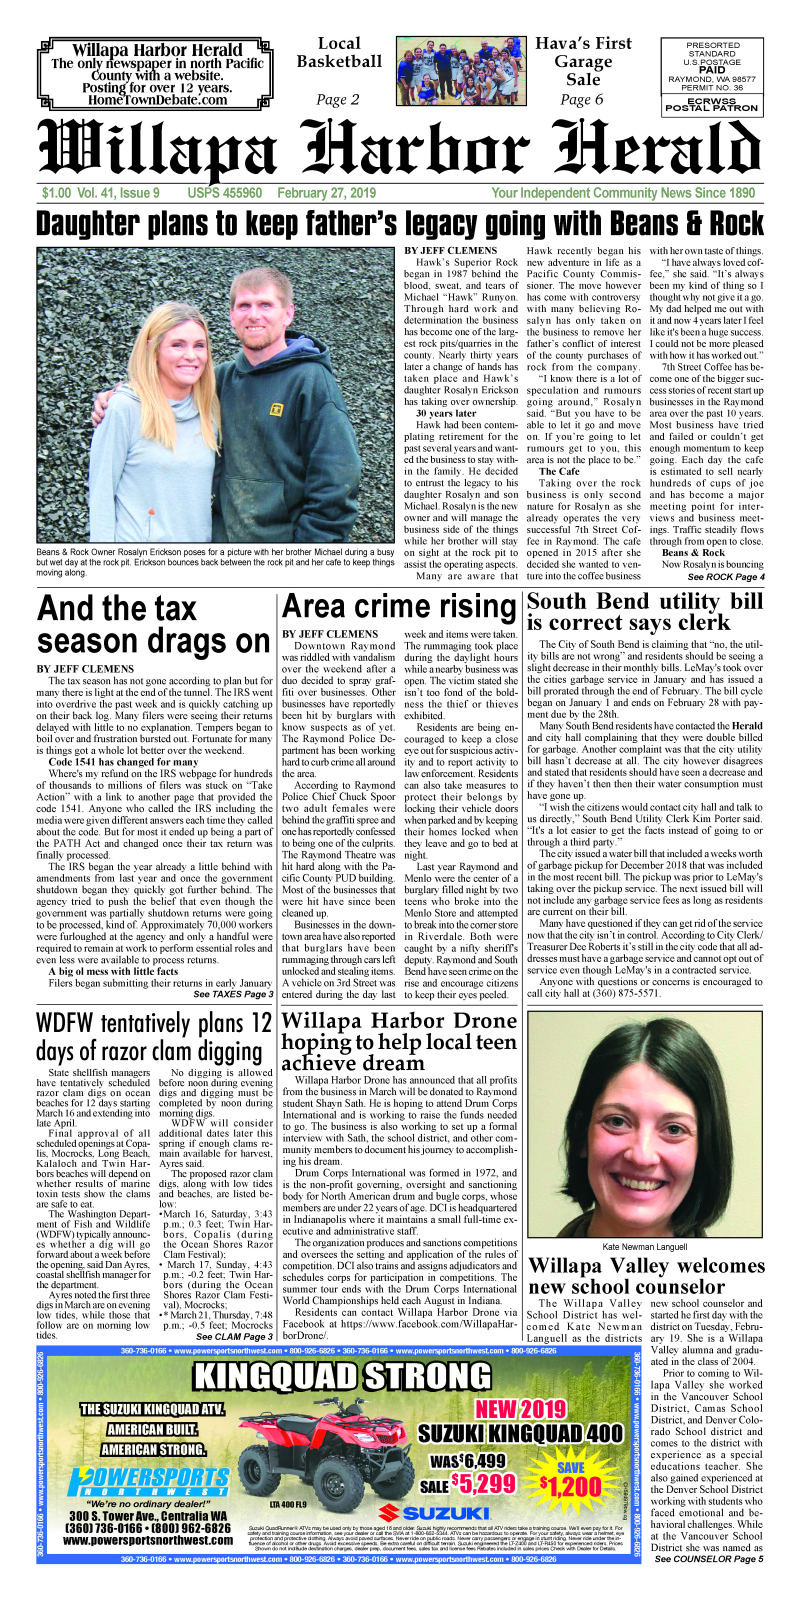 February 27, 2019 Willapa Harbor Herald